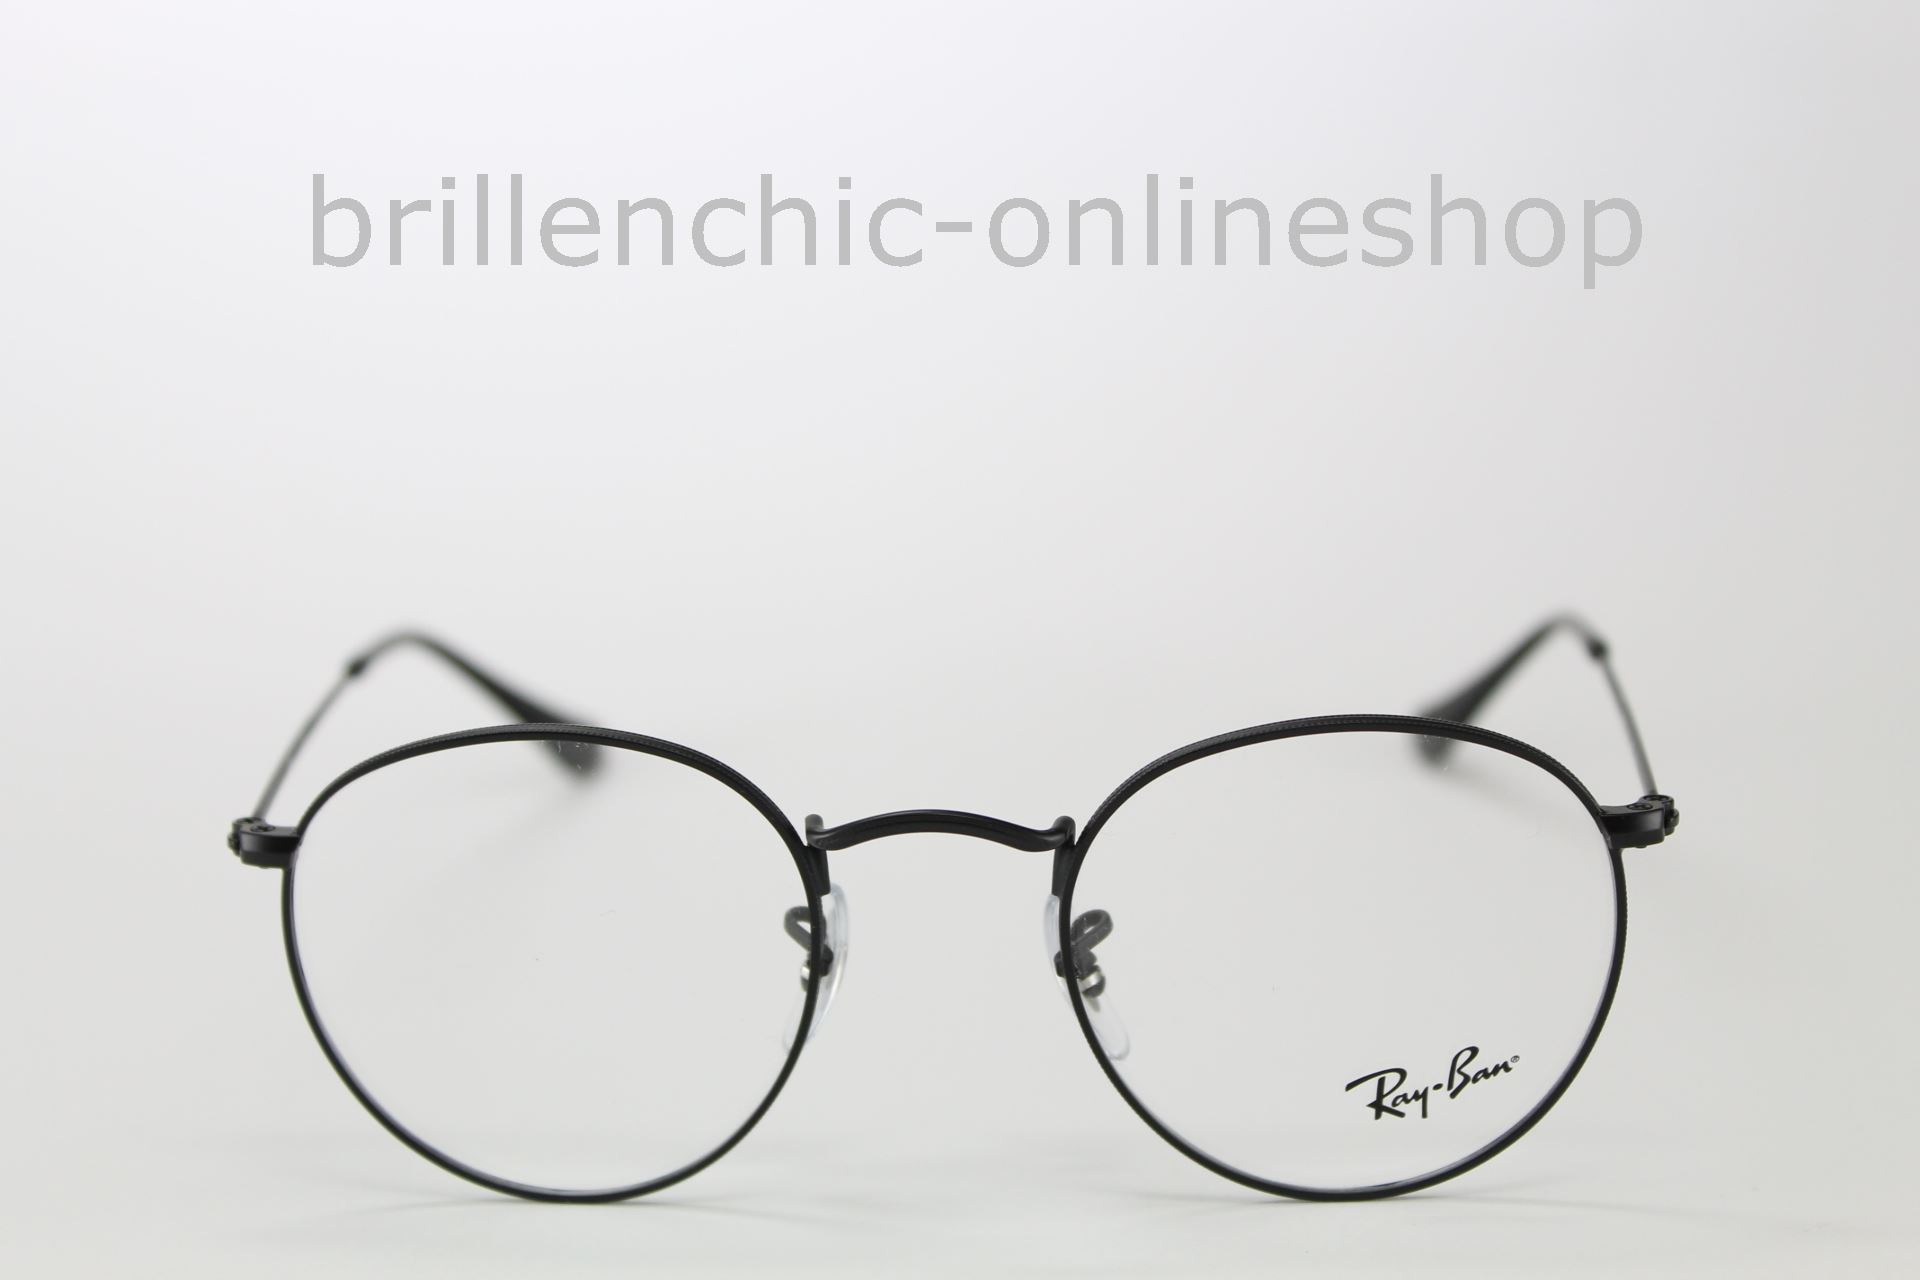 cfe36761932 Brillenchic-onlineshop in Berlin - Ray Ban RB 3447V 3447 2503 ROUND ...